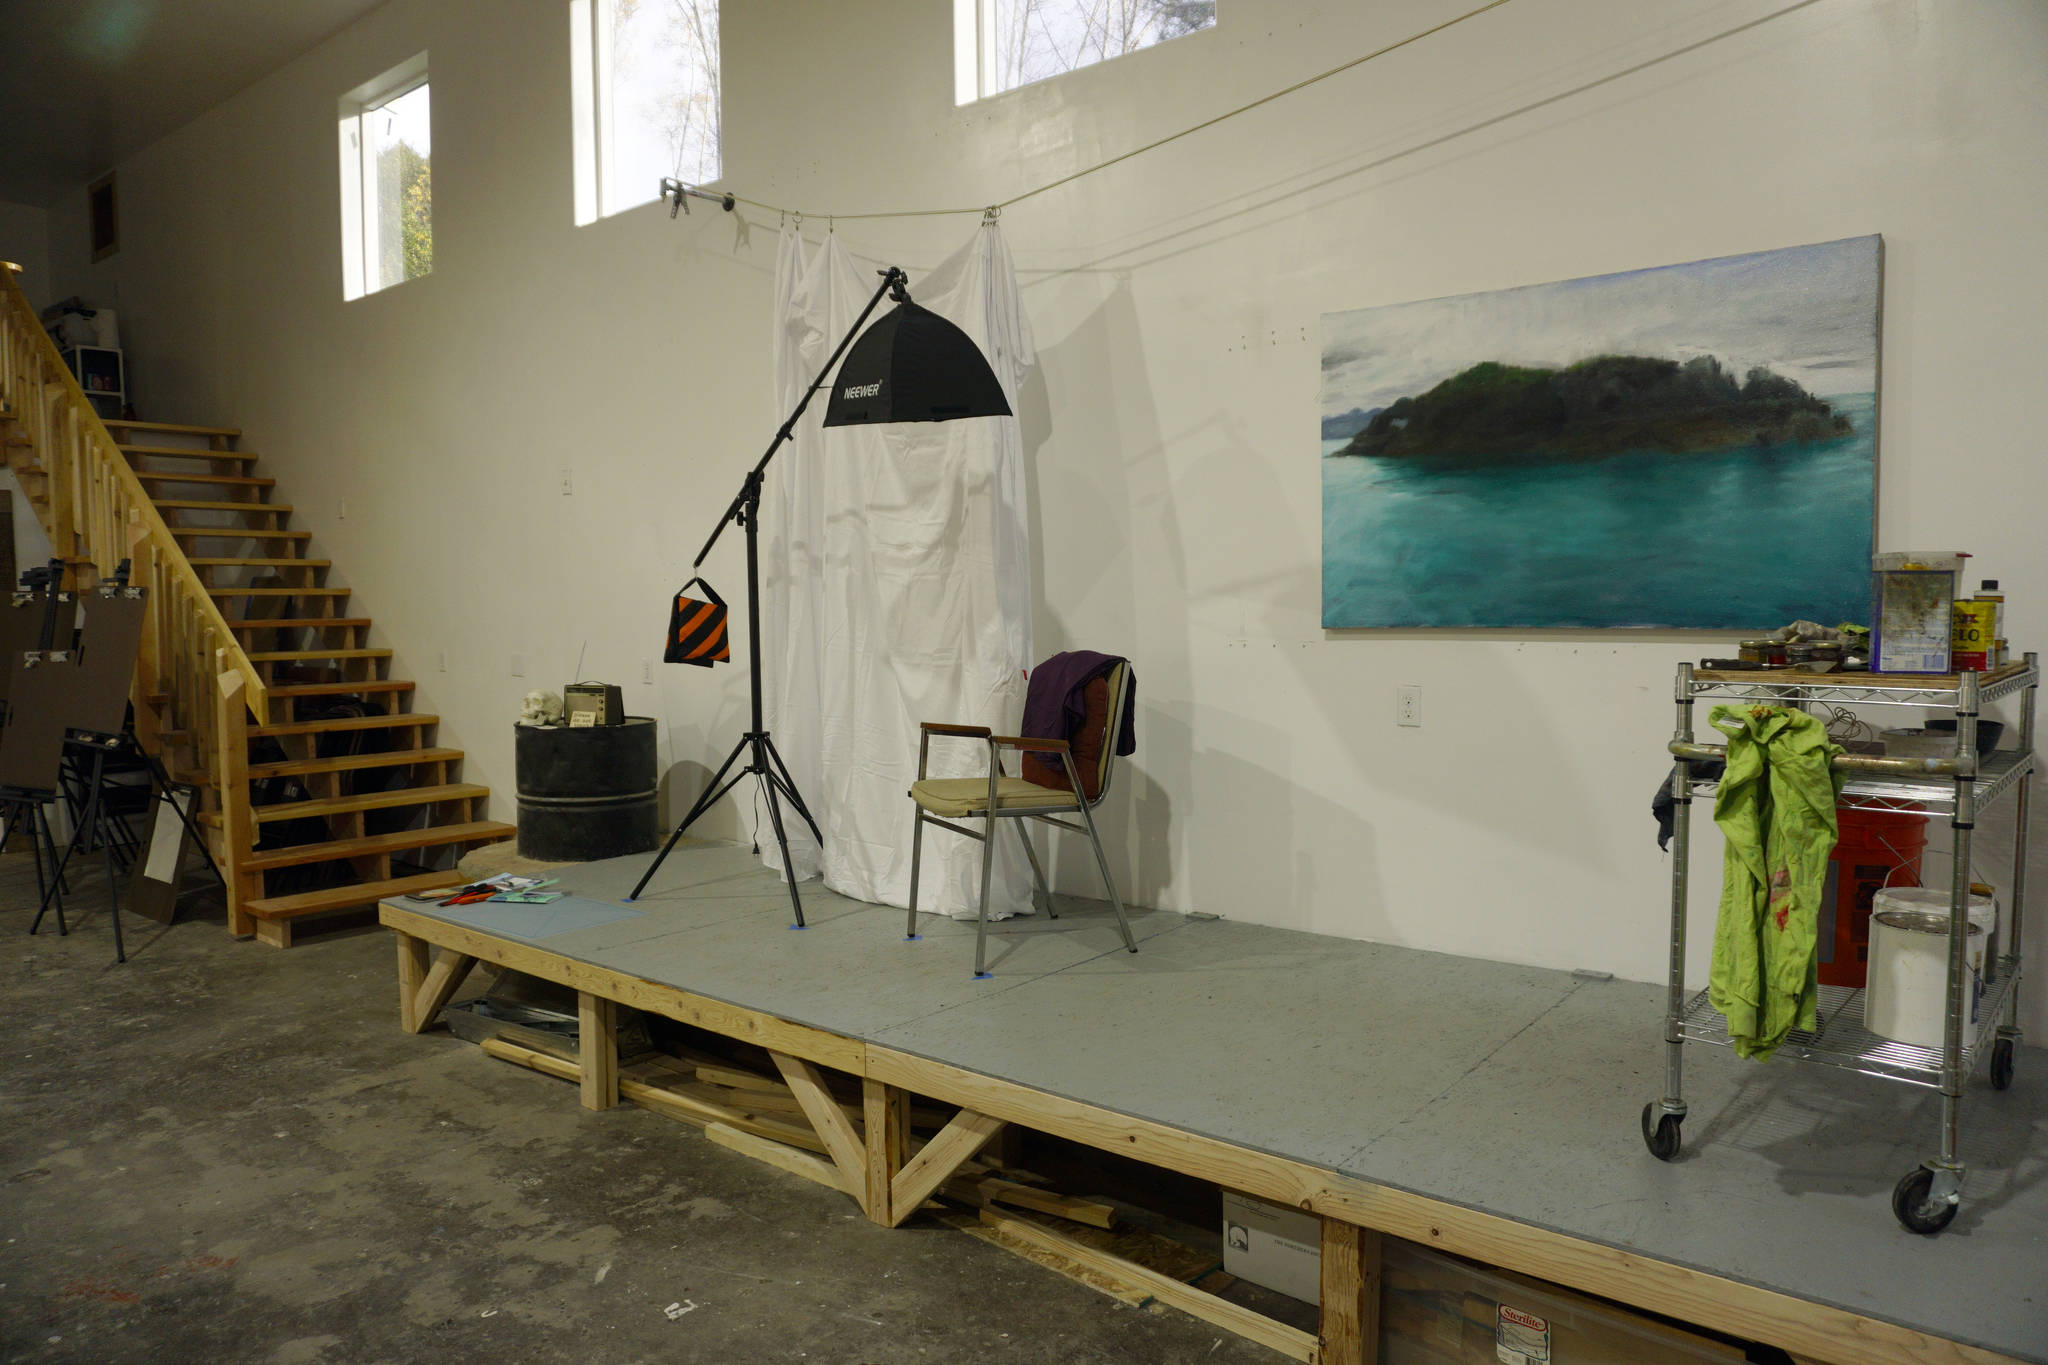 The Shop, shown here Tuesday, Oct. 16, 2018 in Kachemak City, Alaska, includes a posing space for portrait classes. Artists Elissa and David Pettibone started the art space in August. (Photo by Michael Armstrong/Homer News)